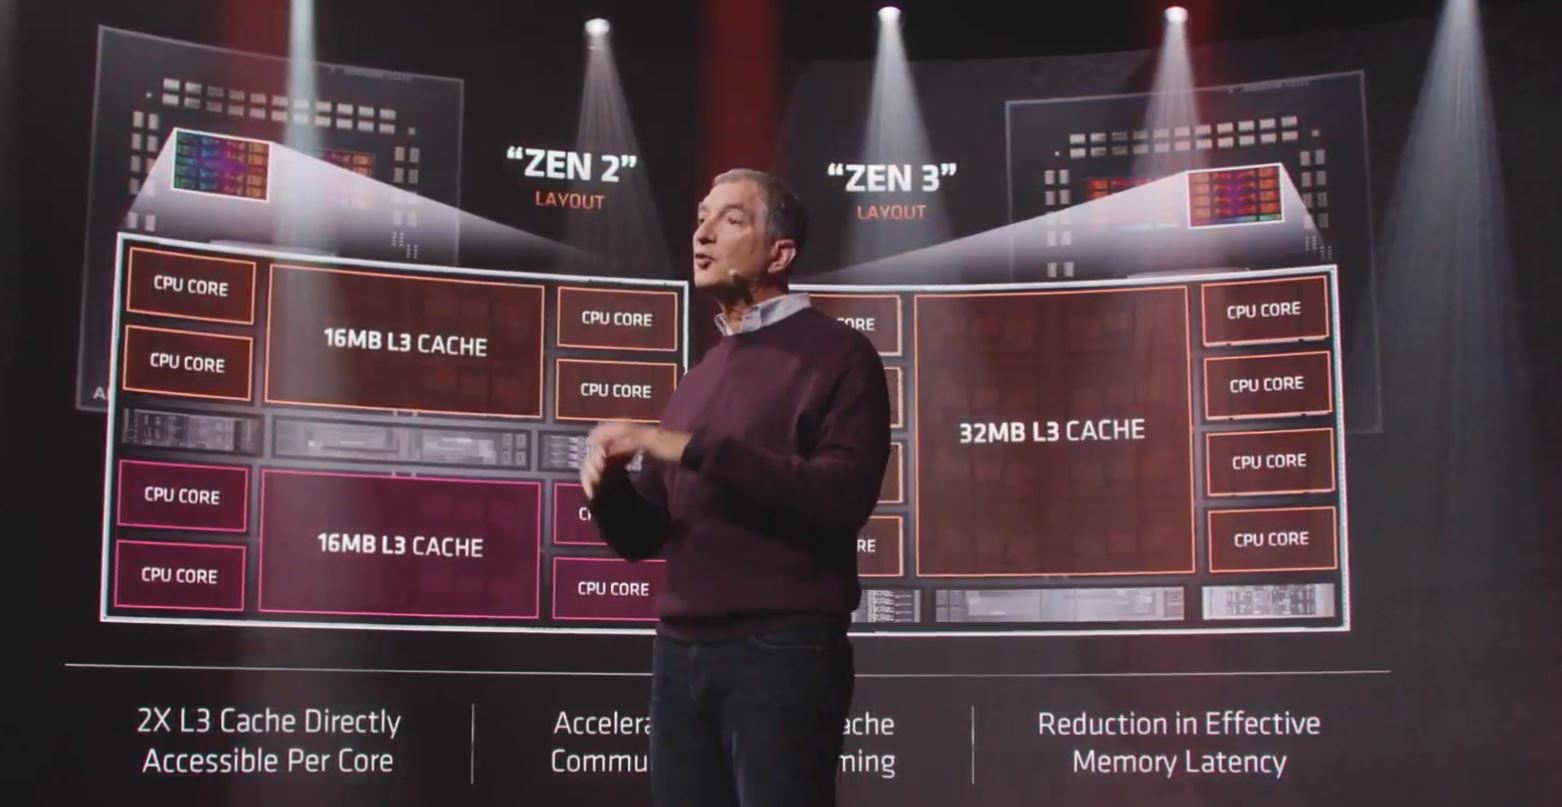 Mark Papermaster AMD Zen 2 And Zen 3 Comparison 2